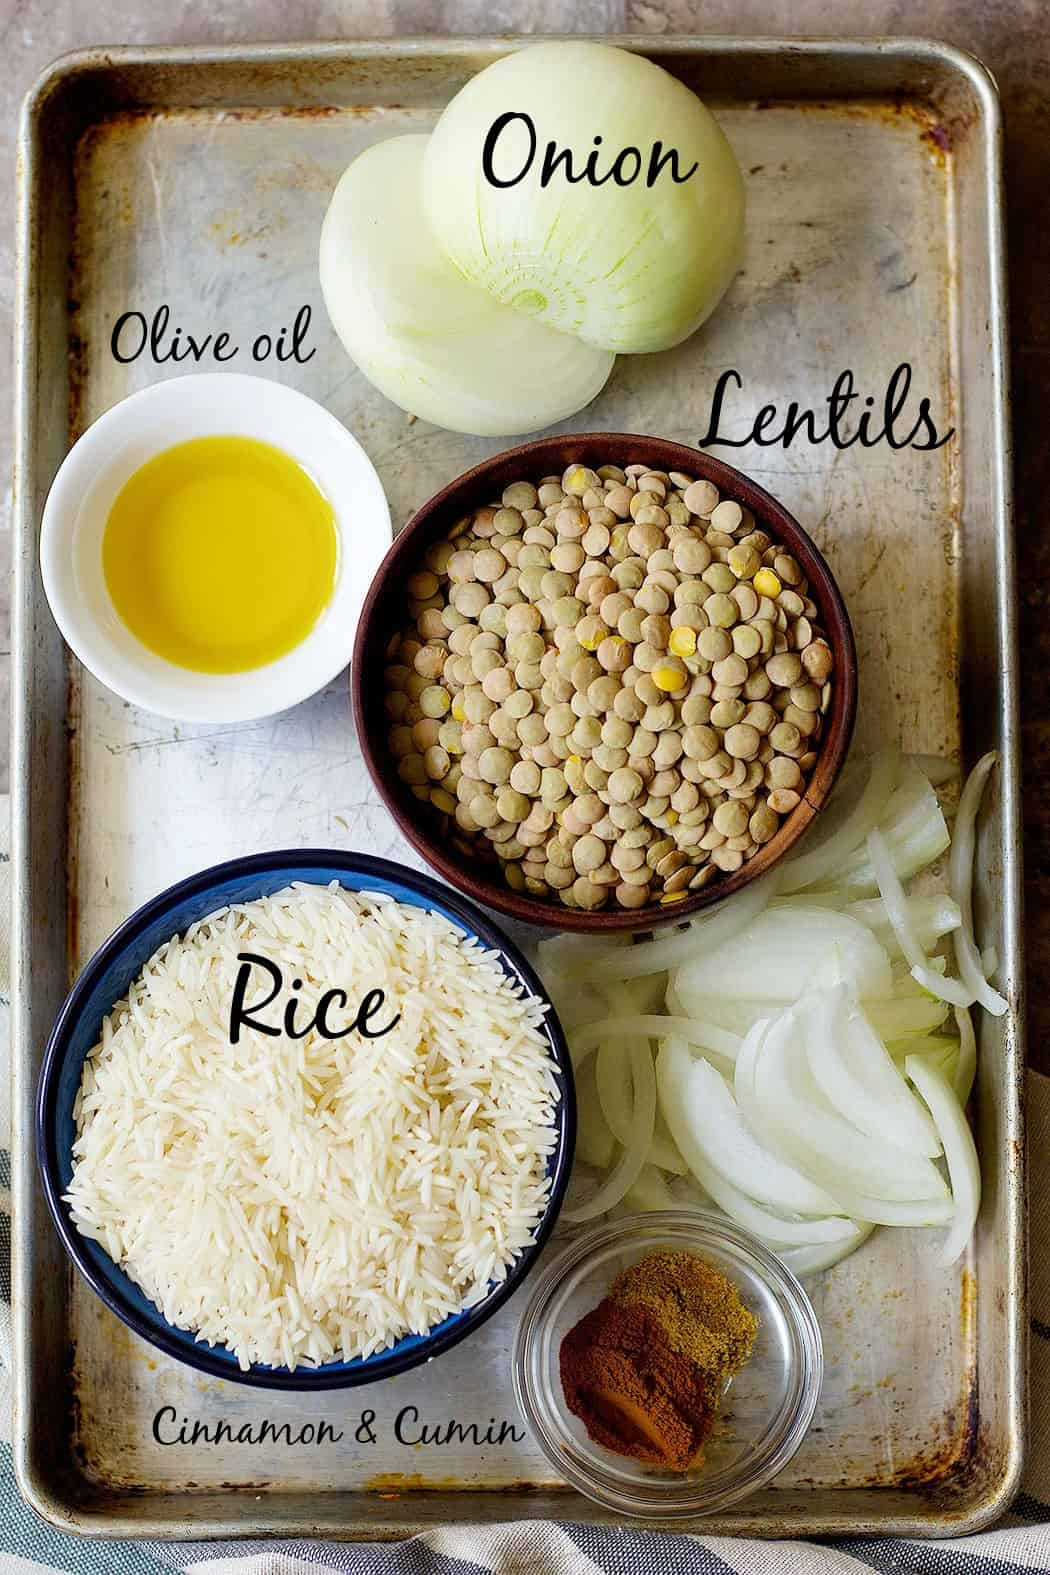 Ingredients to make Lebanese rice and lentils are rice, lentils, onion, olive oil, cinnamon and cumin.